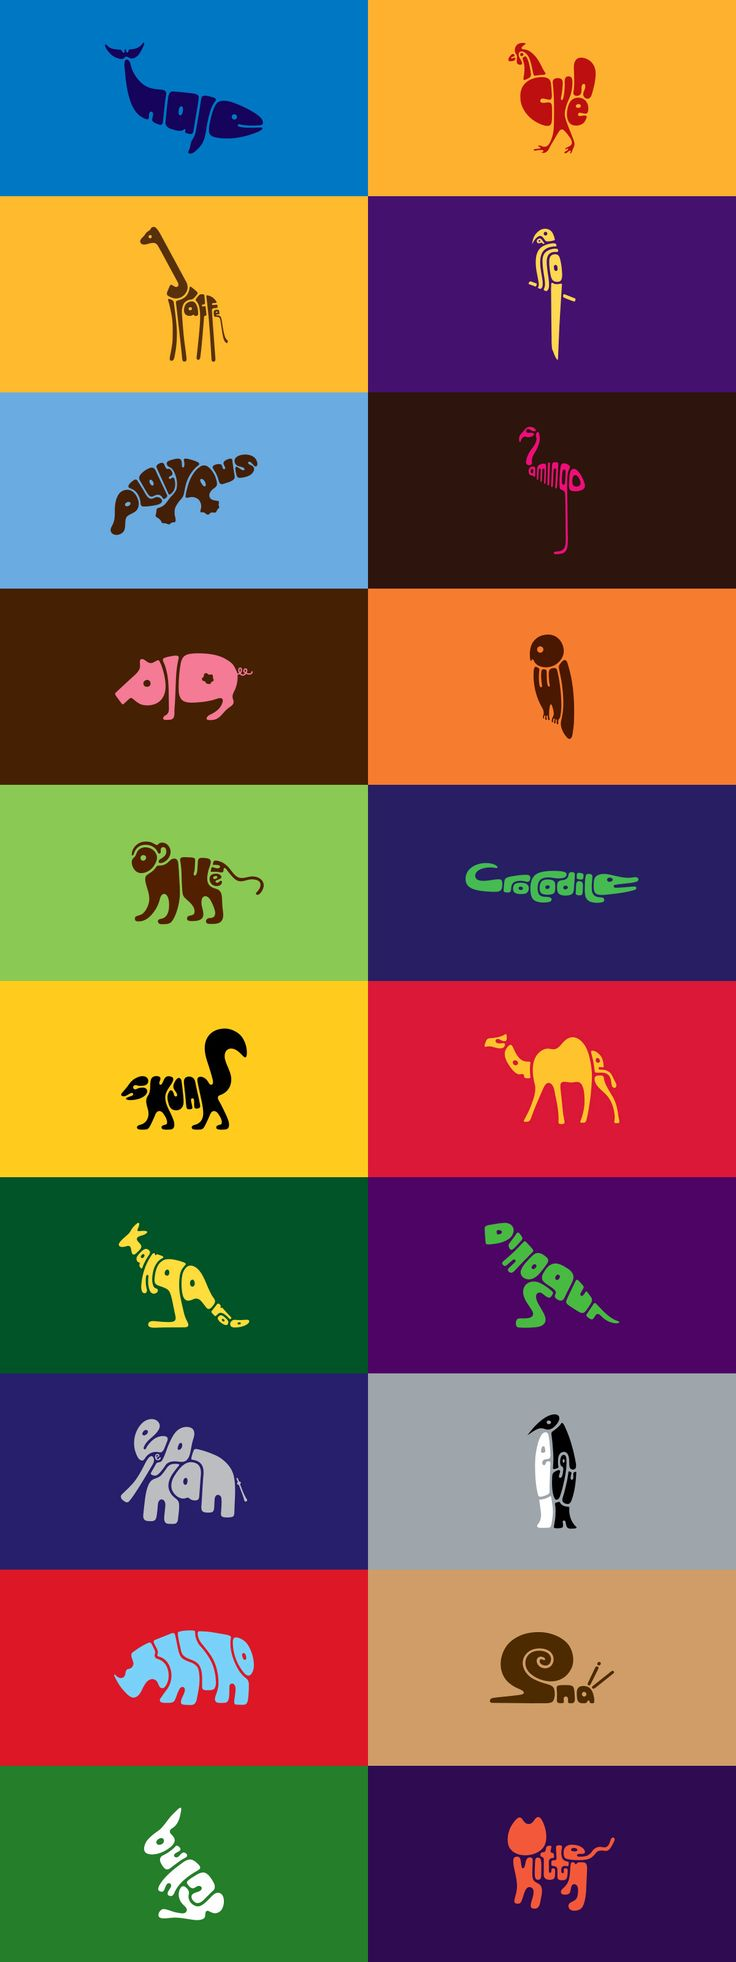 Styling the type into animal shapes is a great idea.